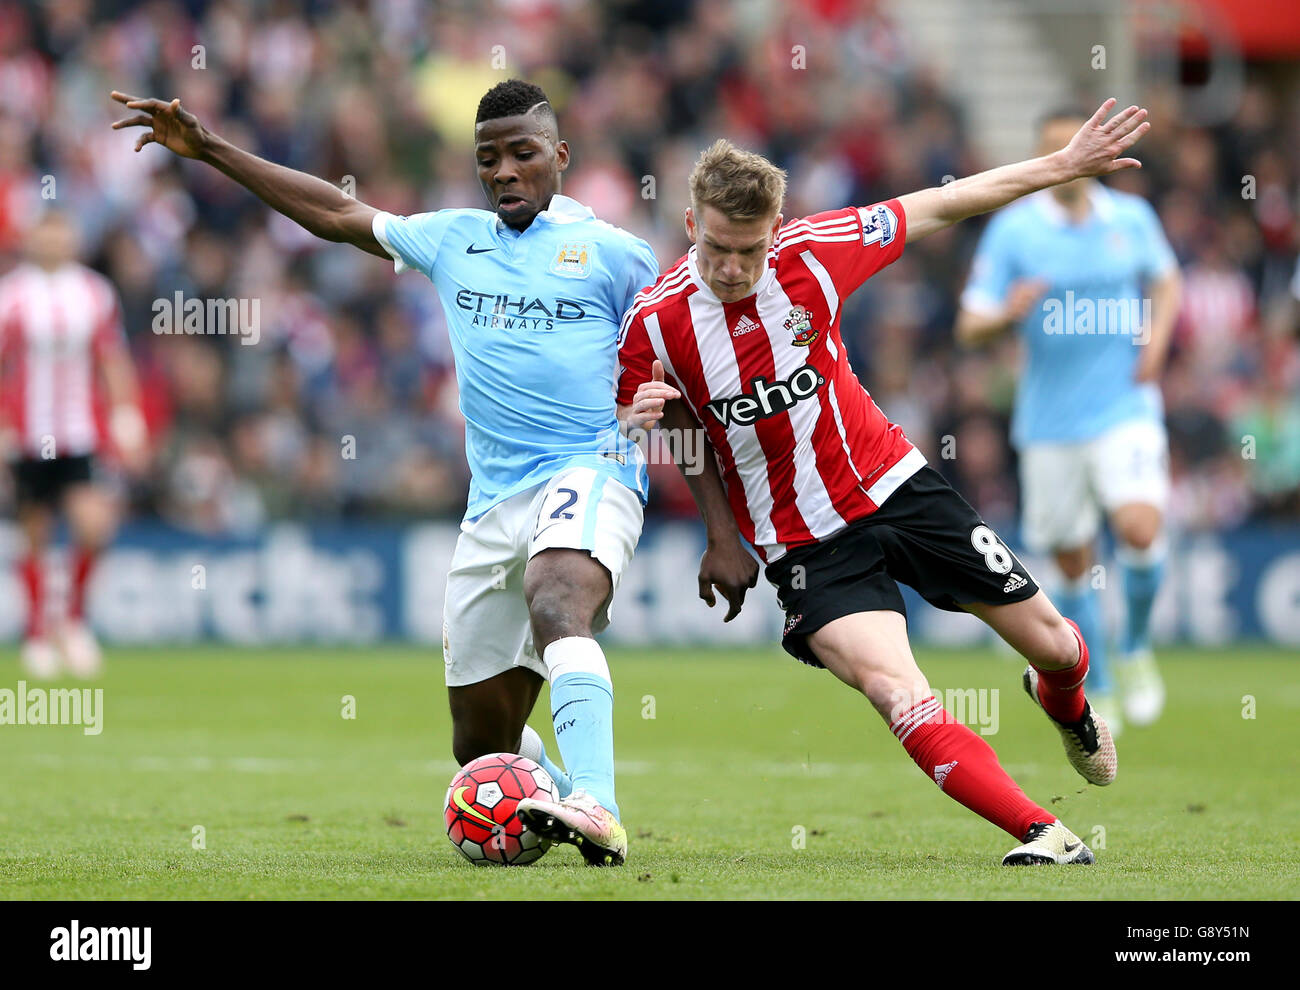 Southampton v Manchester City - Barclays Premier League - St Marys Imagen De Stock